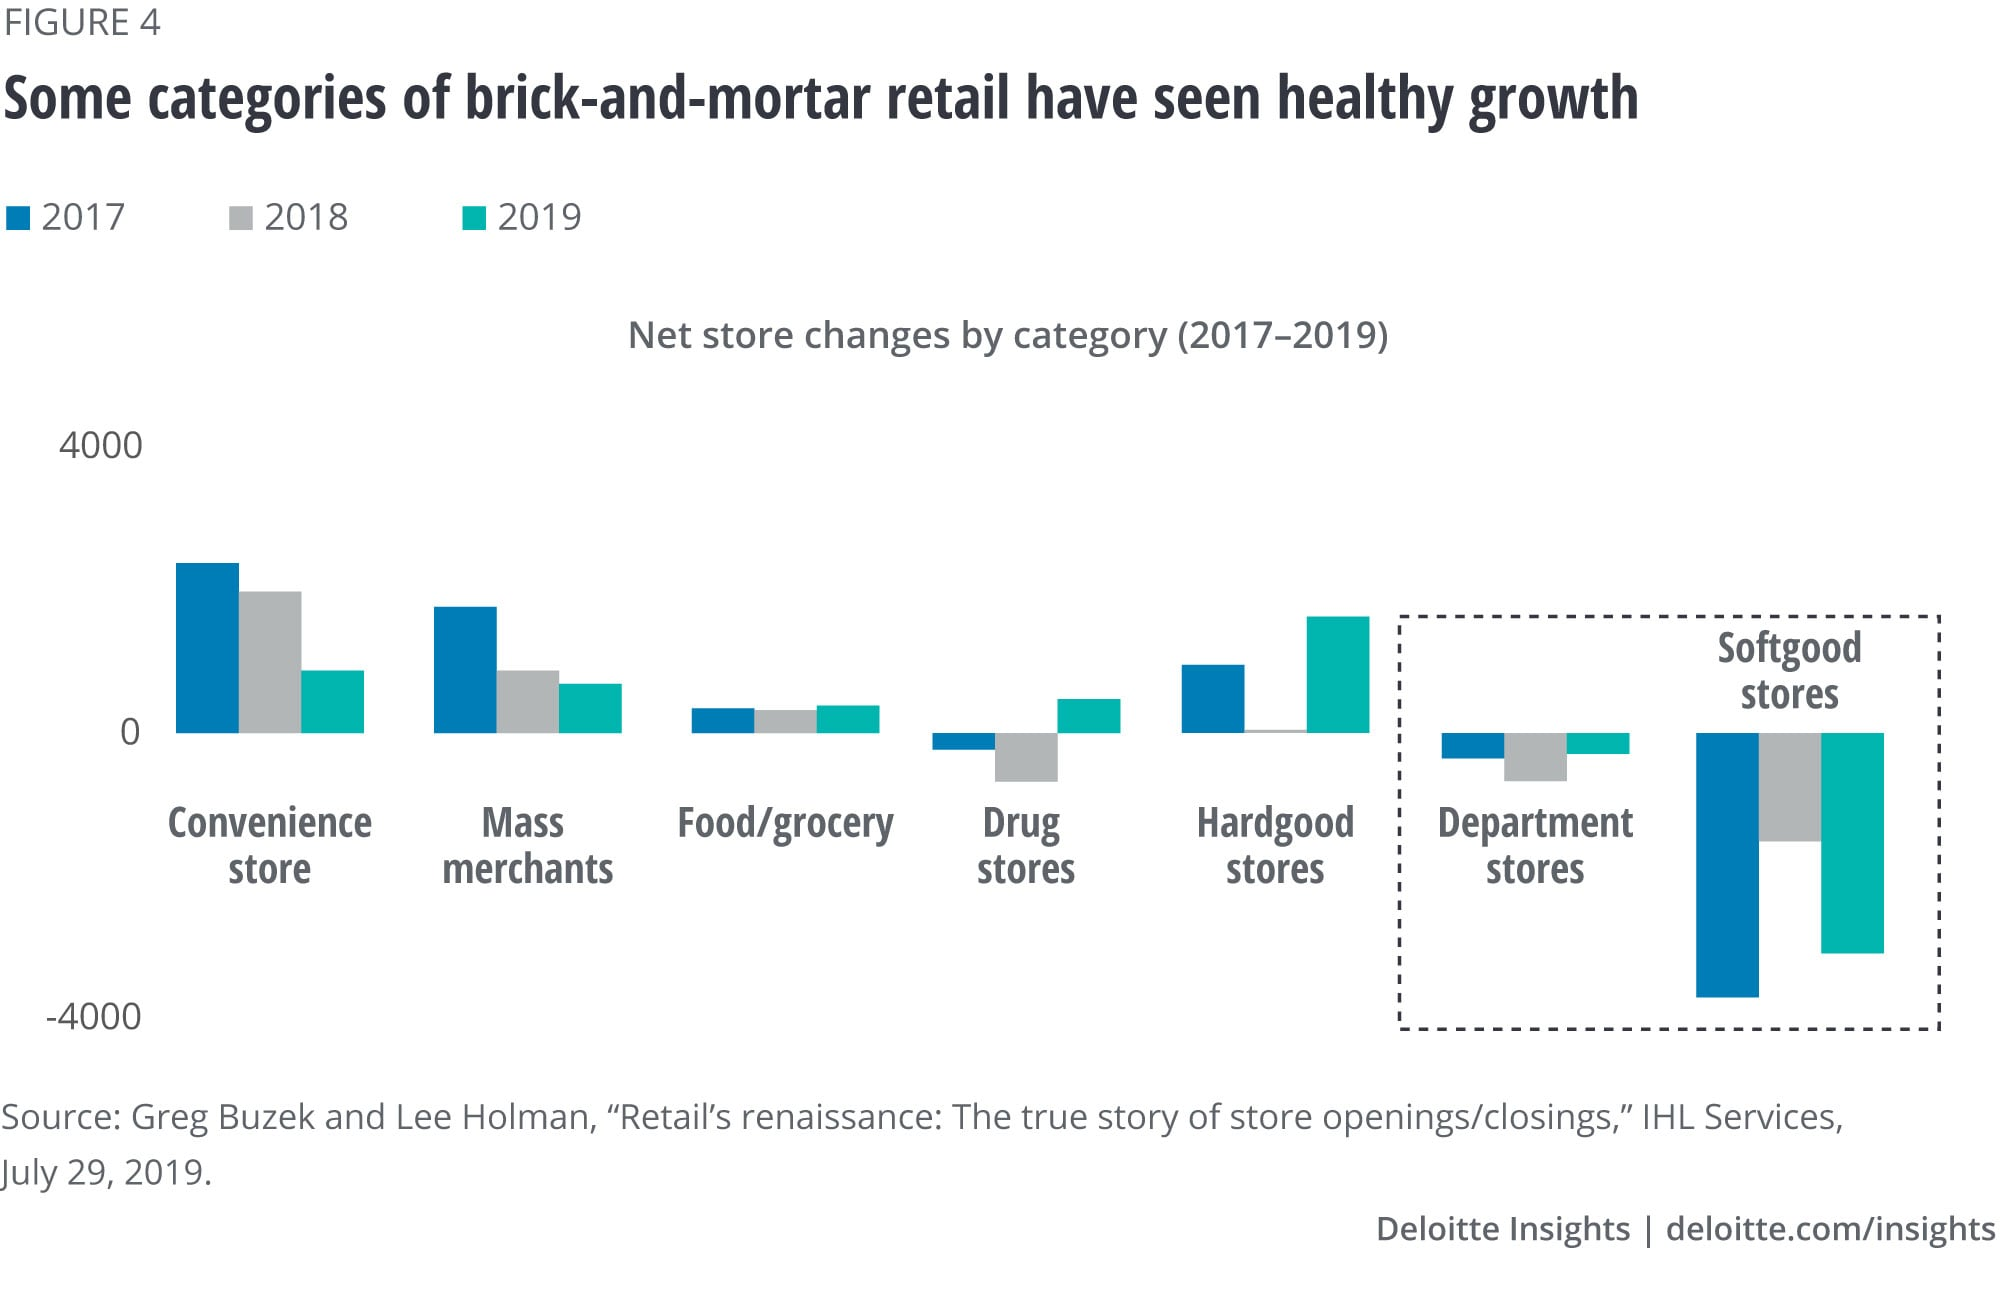 Some categories of brick-and-mortar retail have seen healthy growth